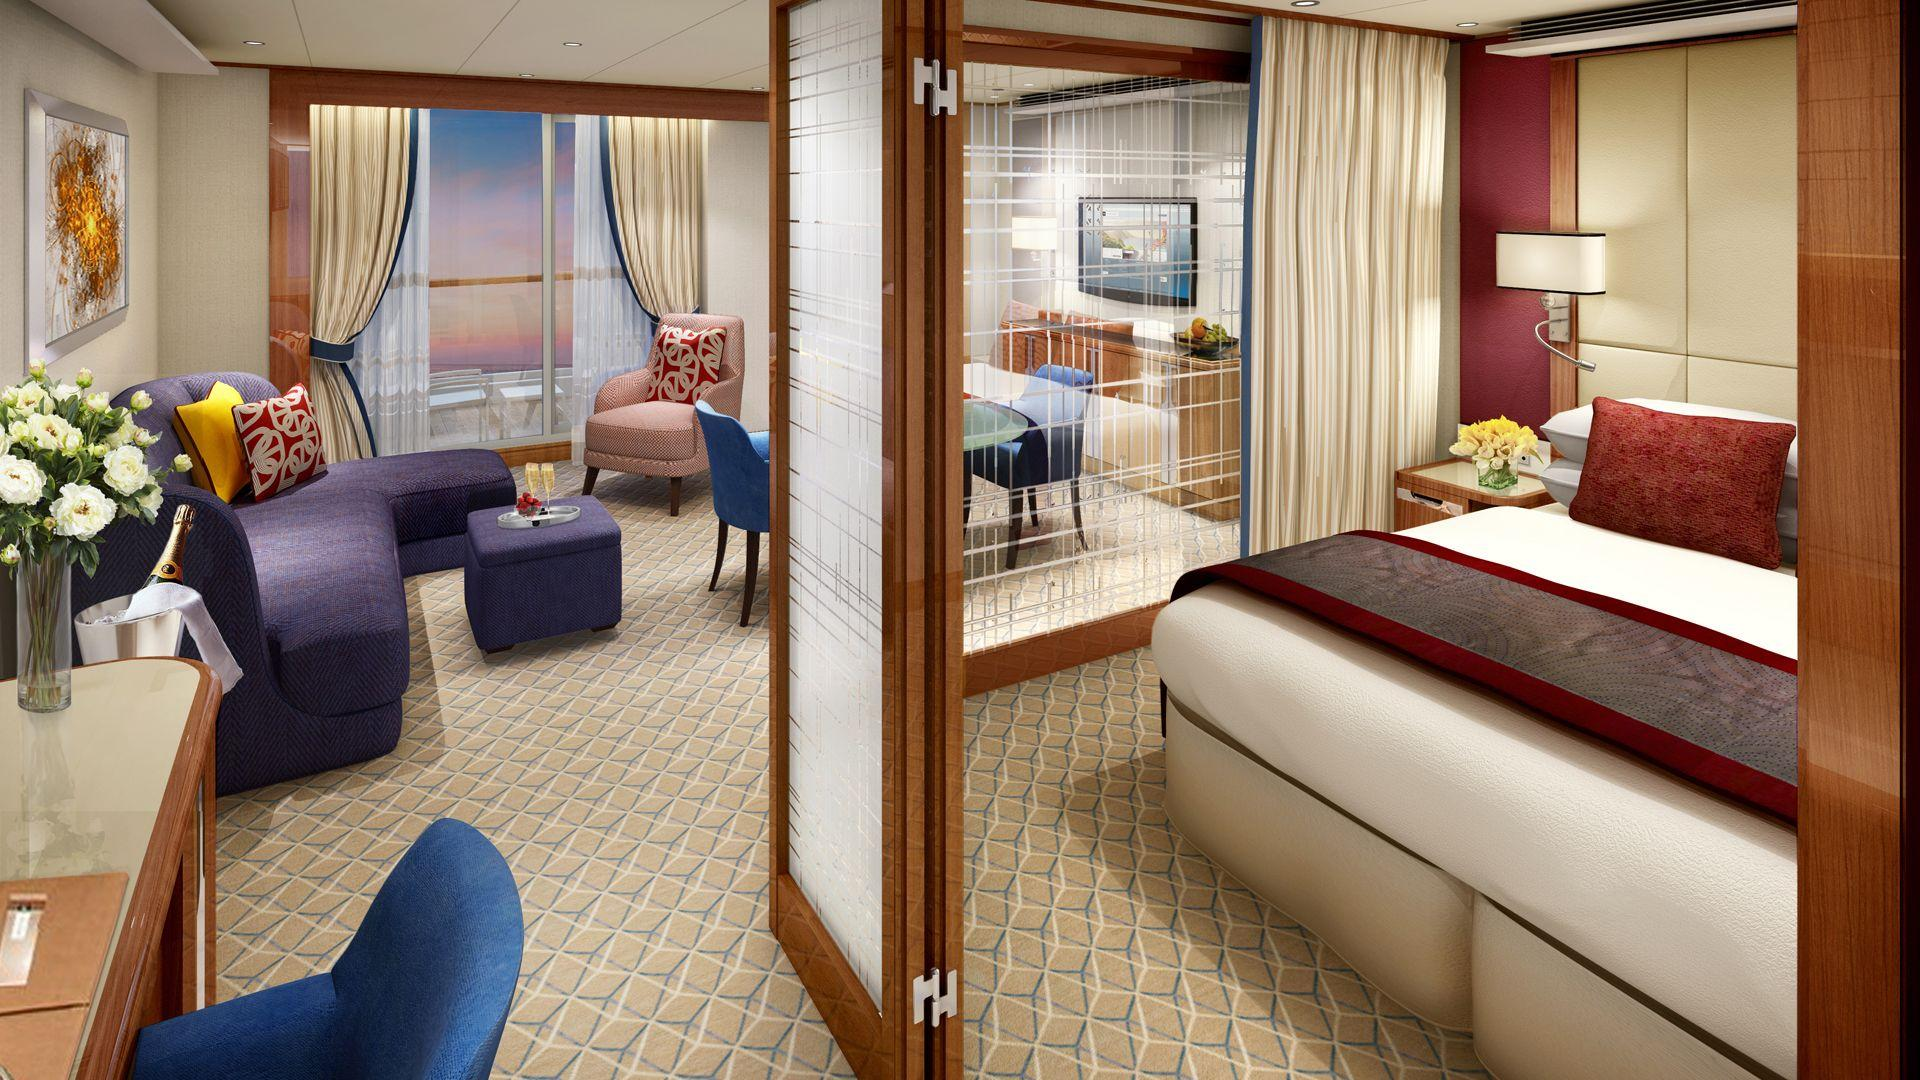 Seabourn Encore - Seabourn Cruise Line - Penthouse Suite